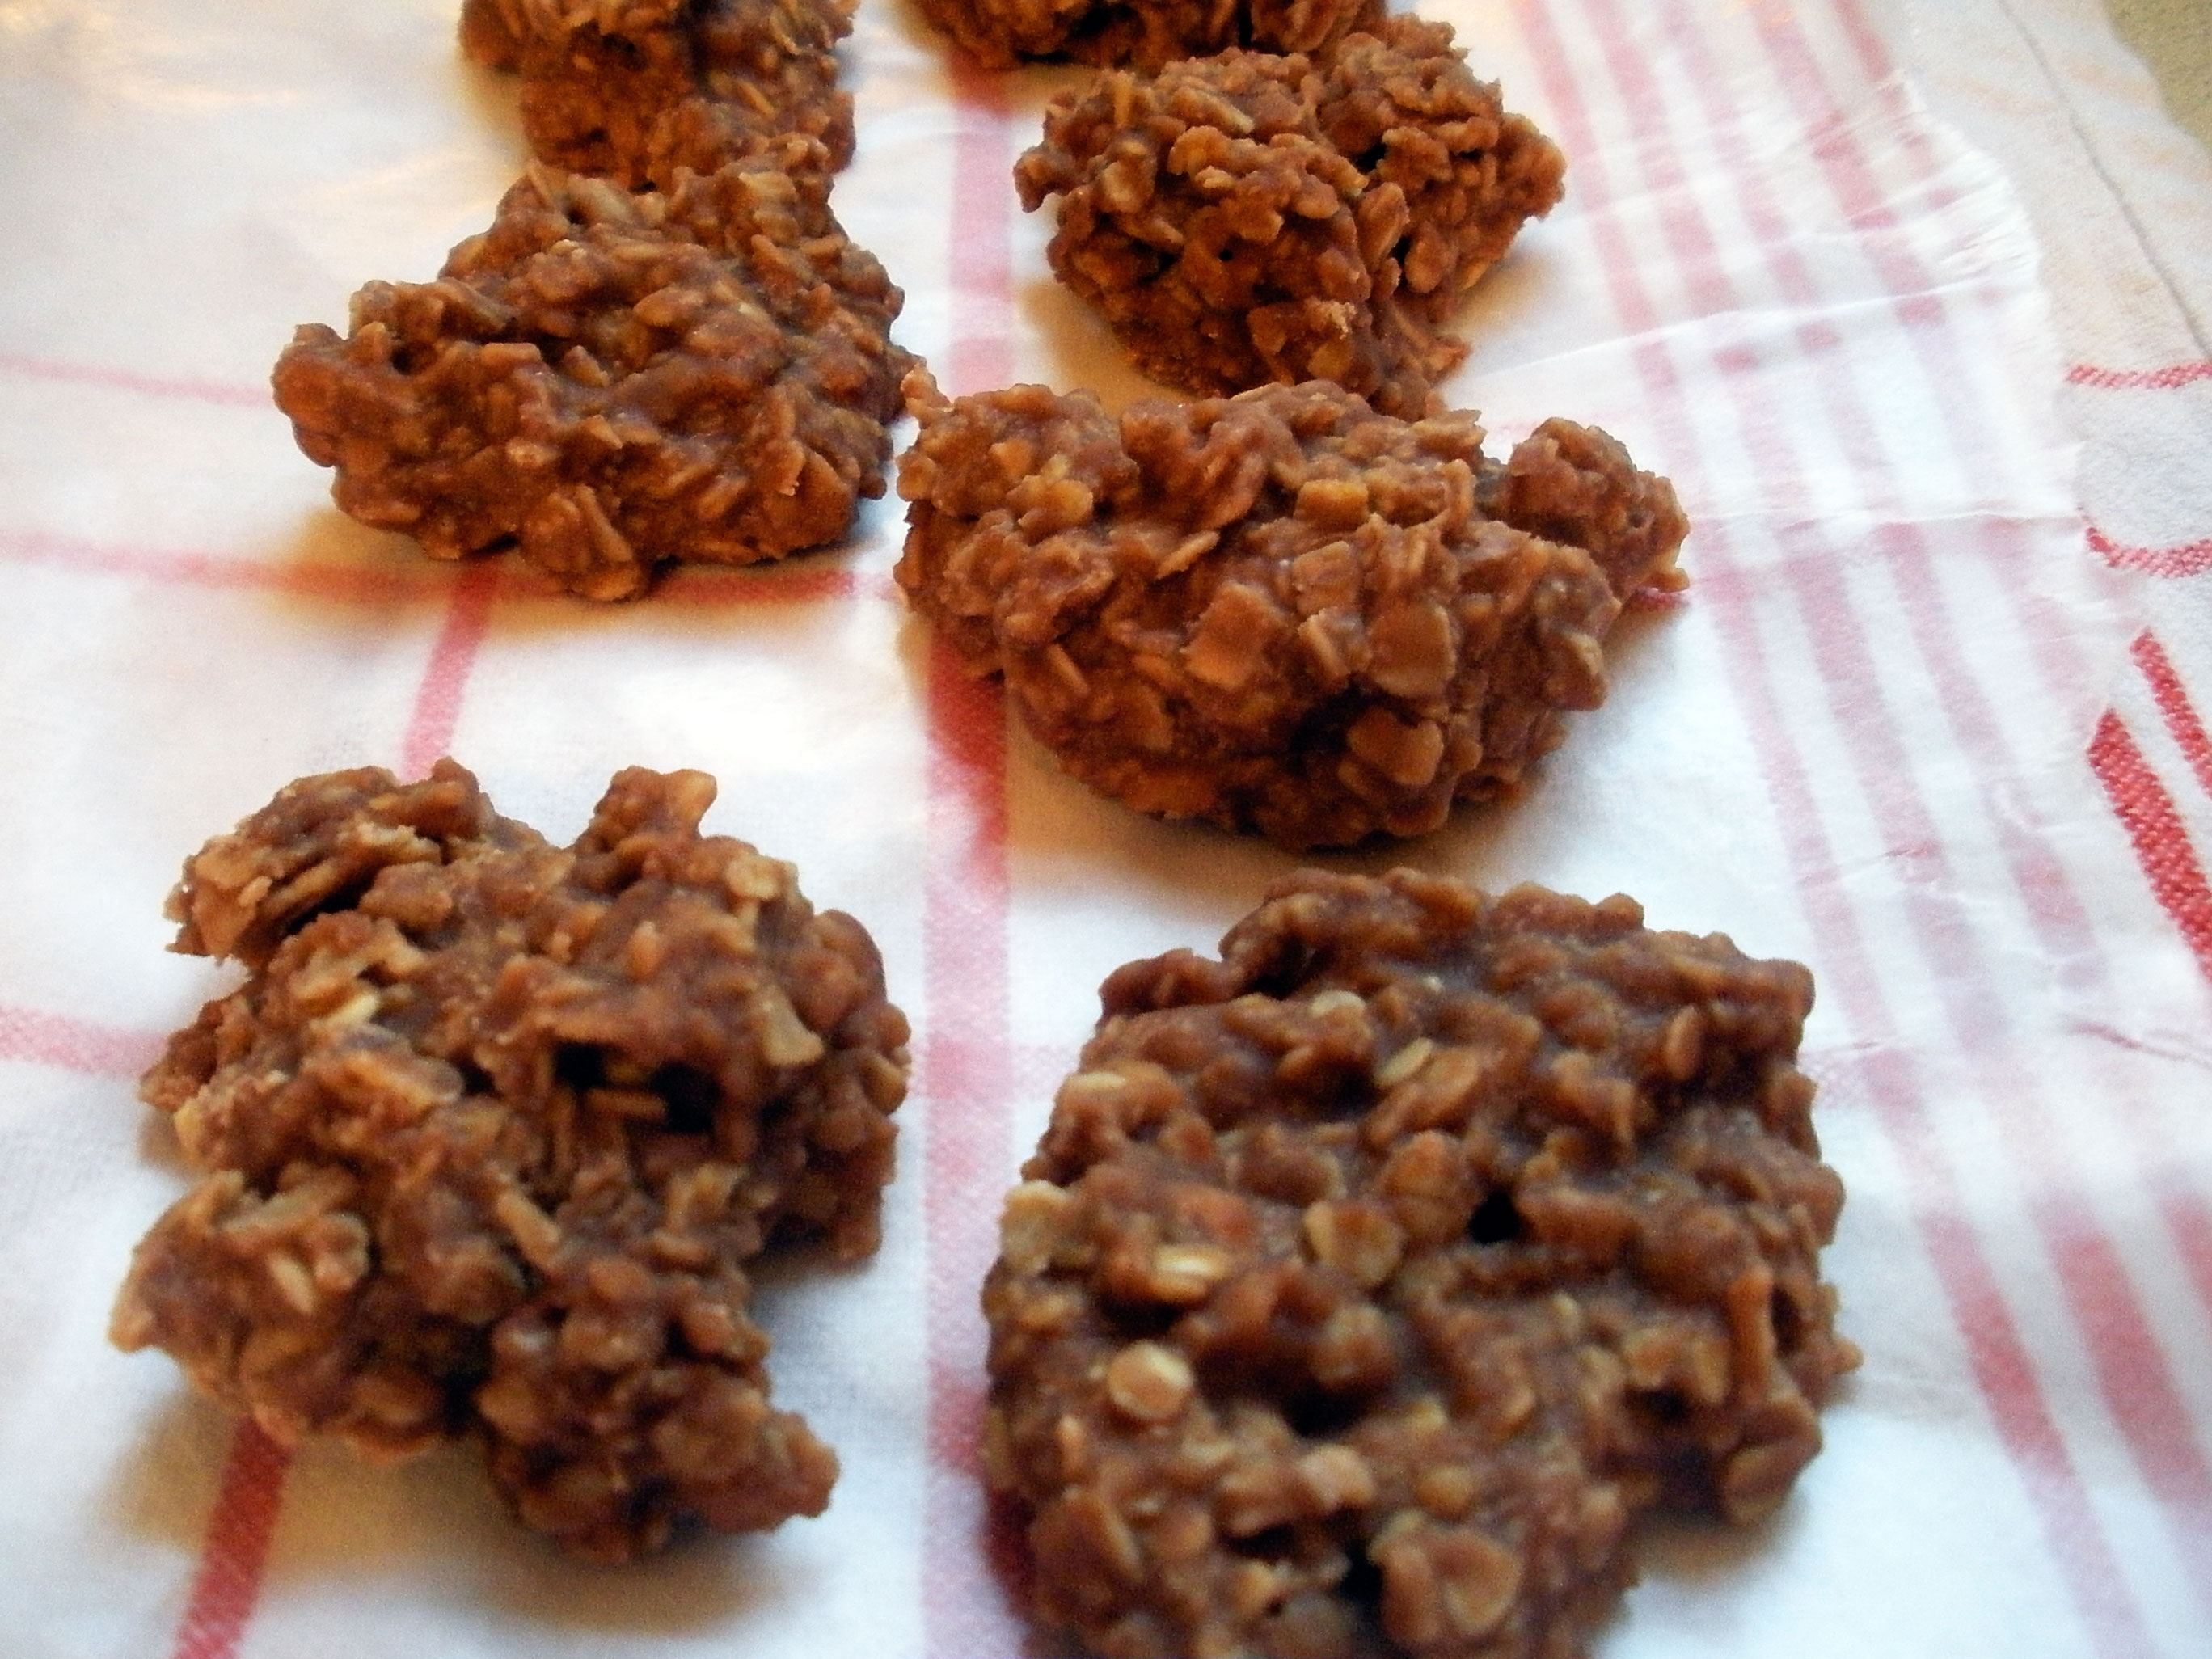 These no-bake oatmeal cookies had been on my mind, but without a good ...